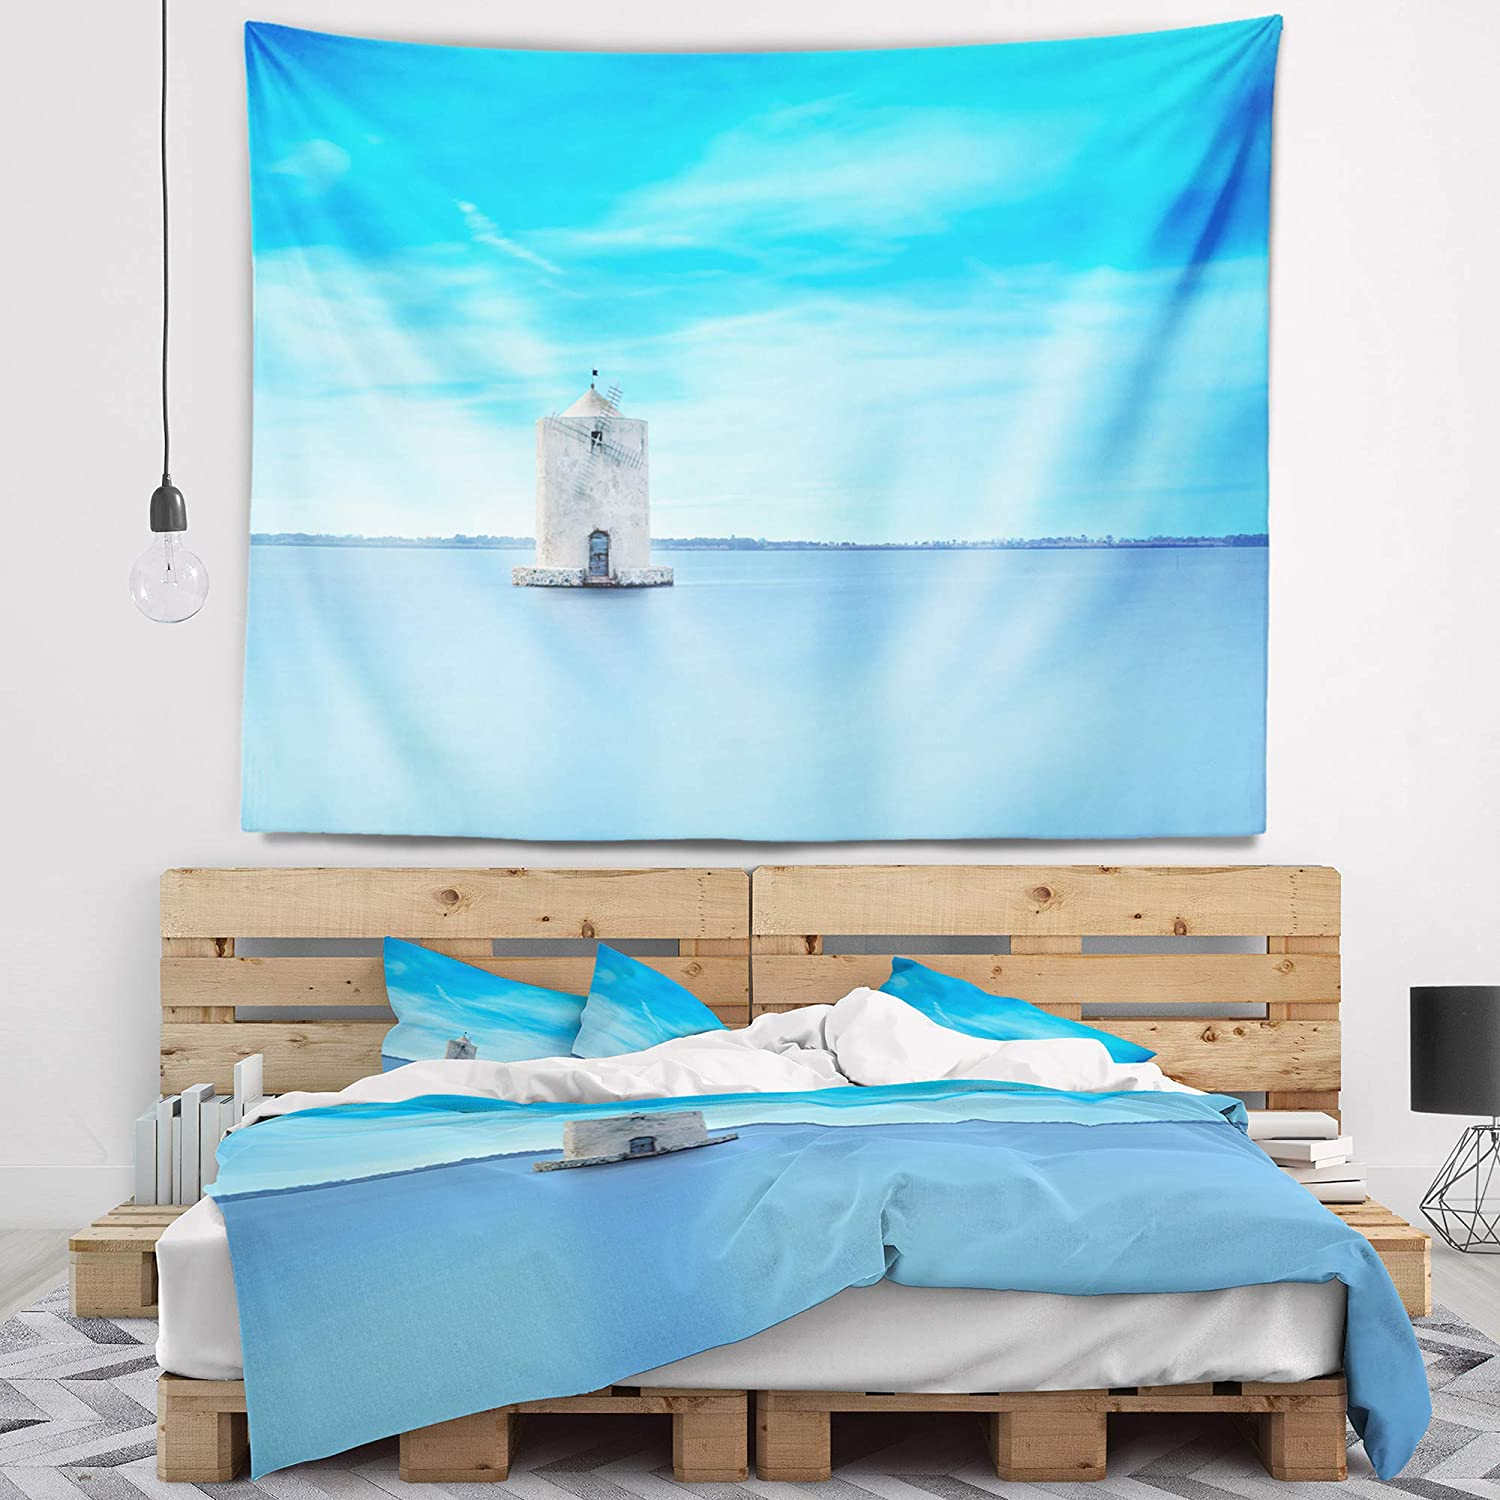 80 x 68 Designart TAP11370-80-68  Old Spanish Windmill in Blue Lagoon Seashore Blanket D/écor Art for Home and Office Wall Tapestry x Large